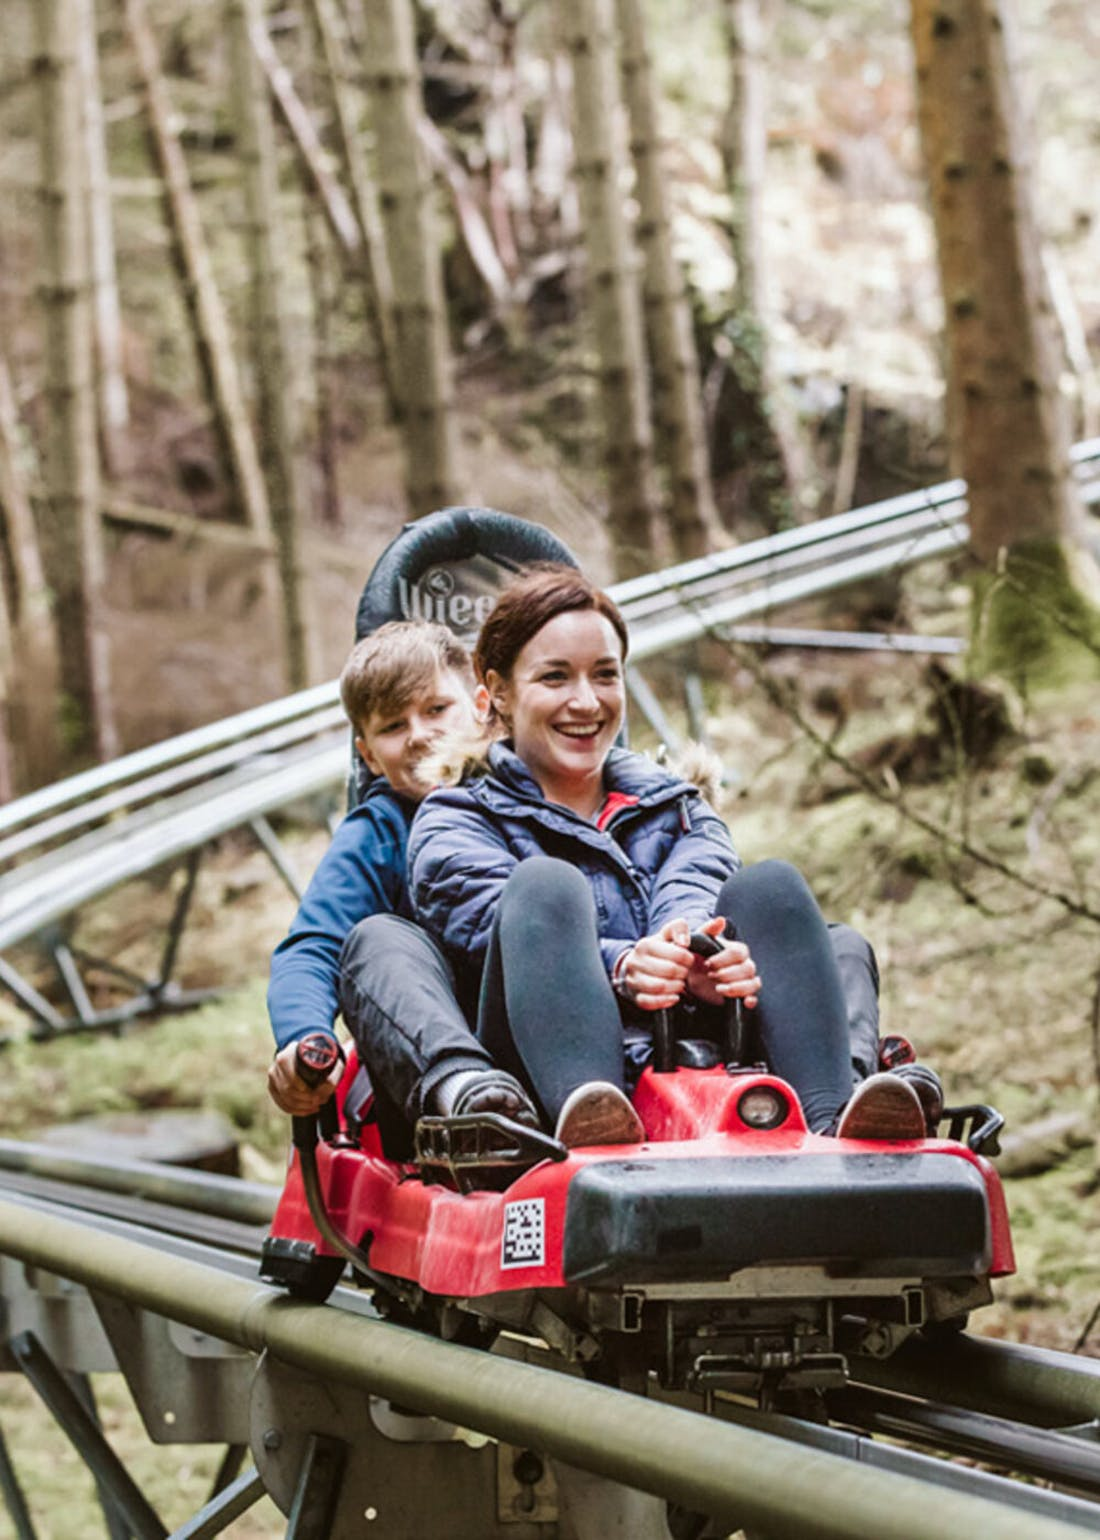 Virgin Experience Days Zip World Forest Coaster for 2